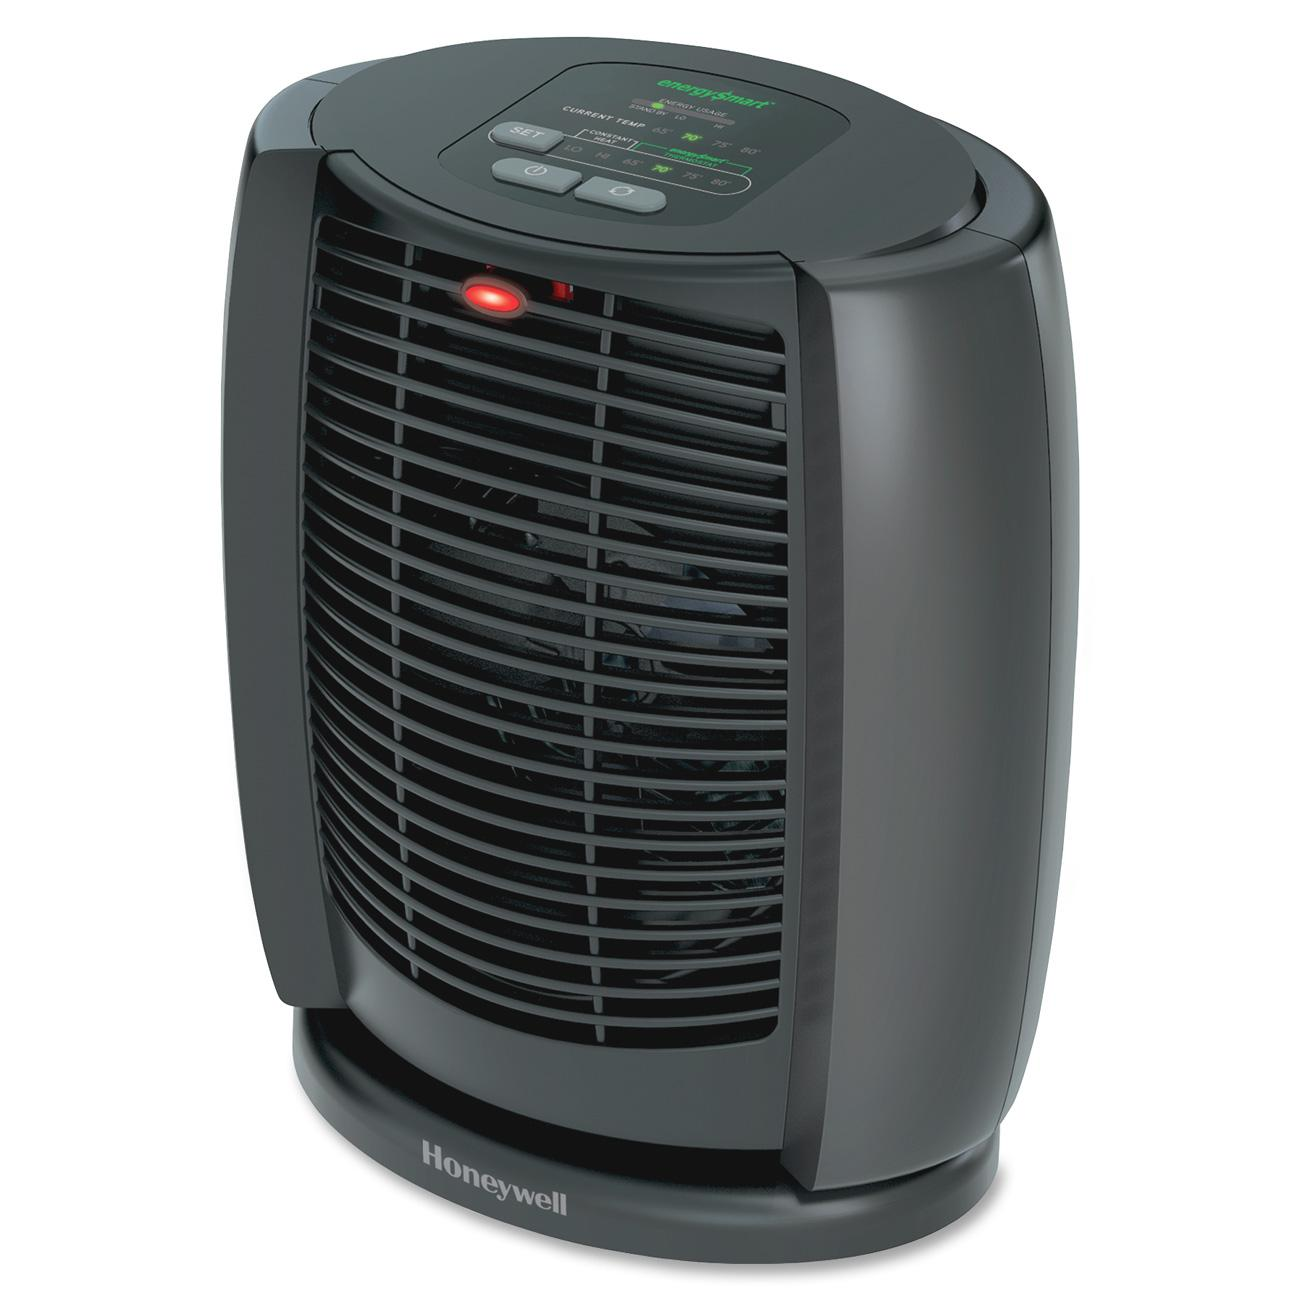 Honeywell, HWLHZ7300, HZ-7300 EnergySmart Cool Touch Heater, Black